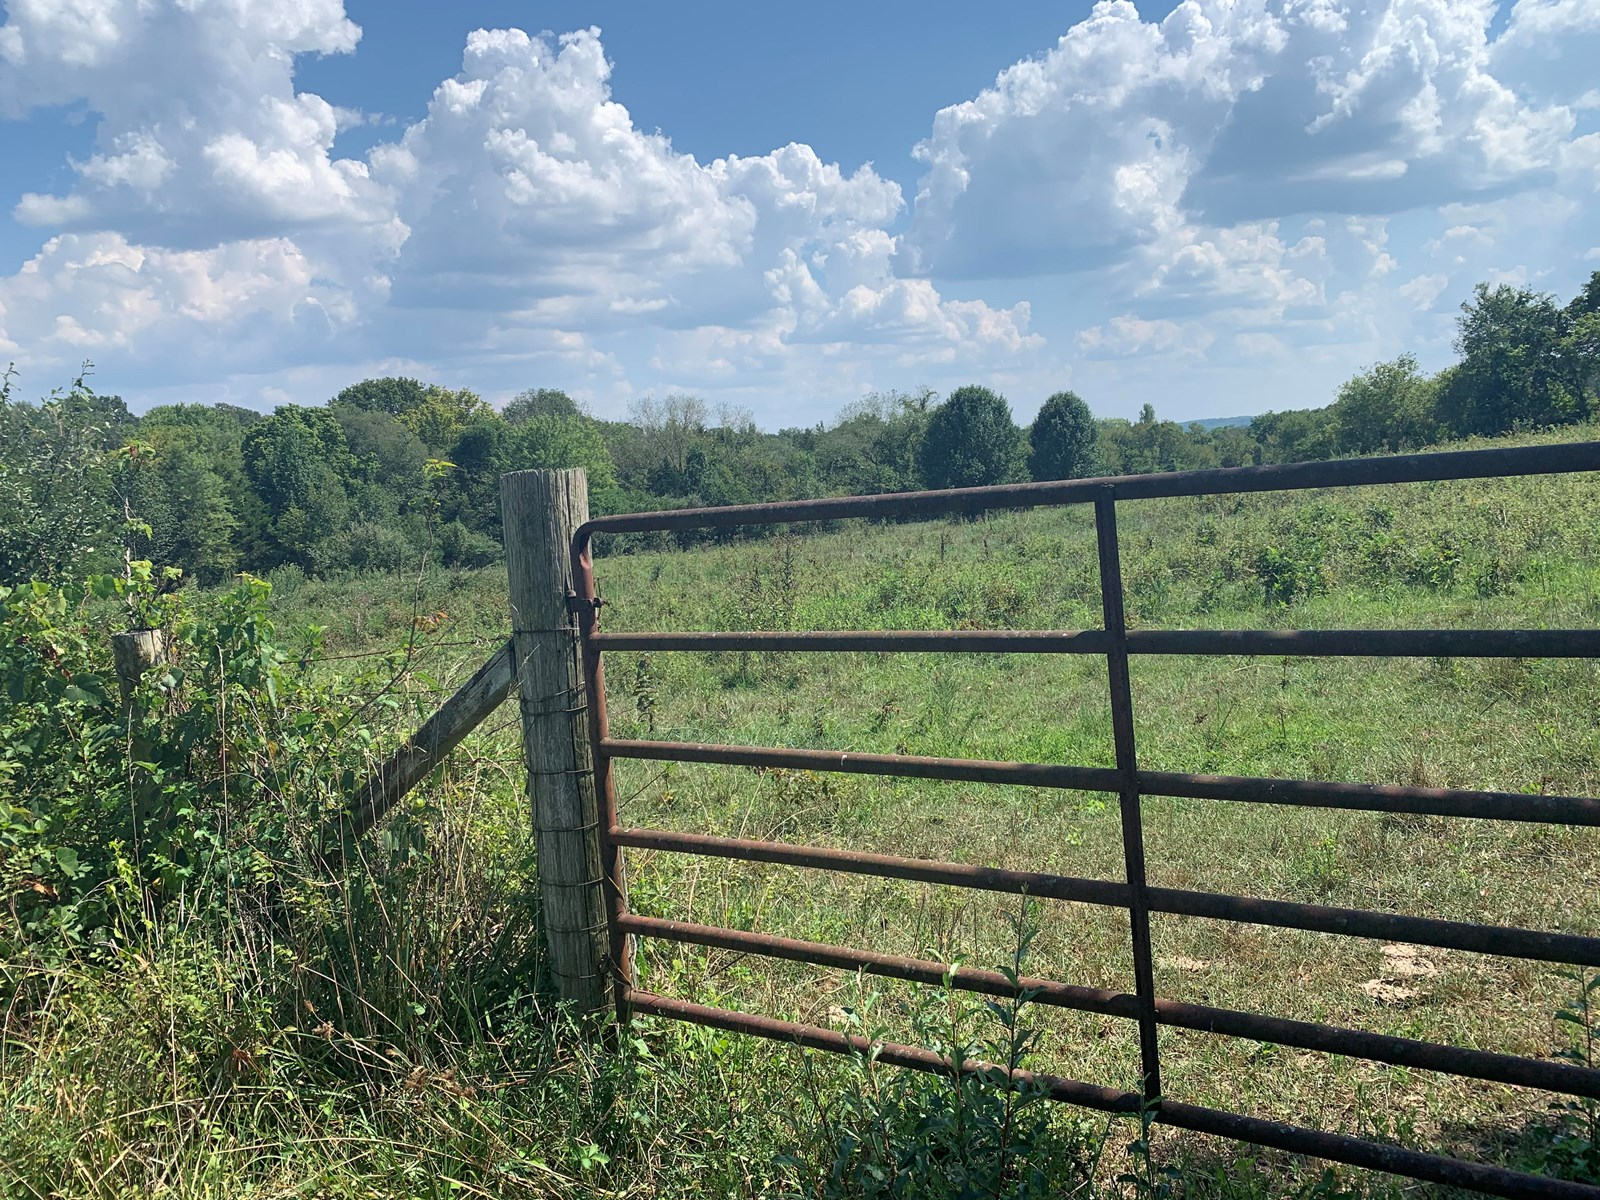 Texas County Acreage For Sale in City Limits of Cabool, MO